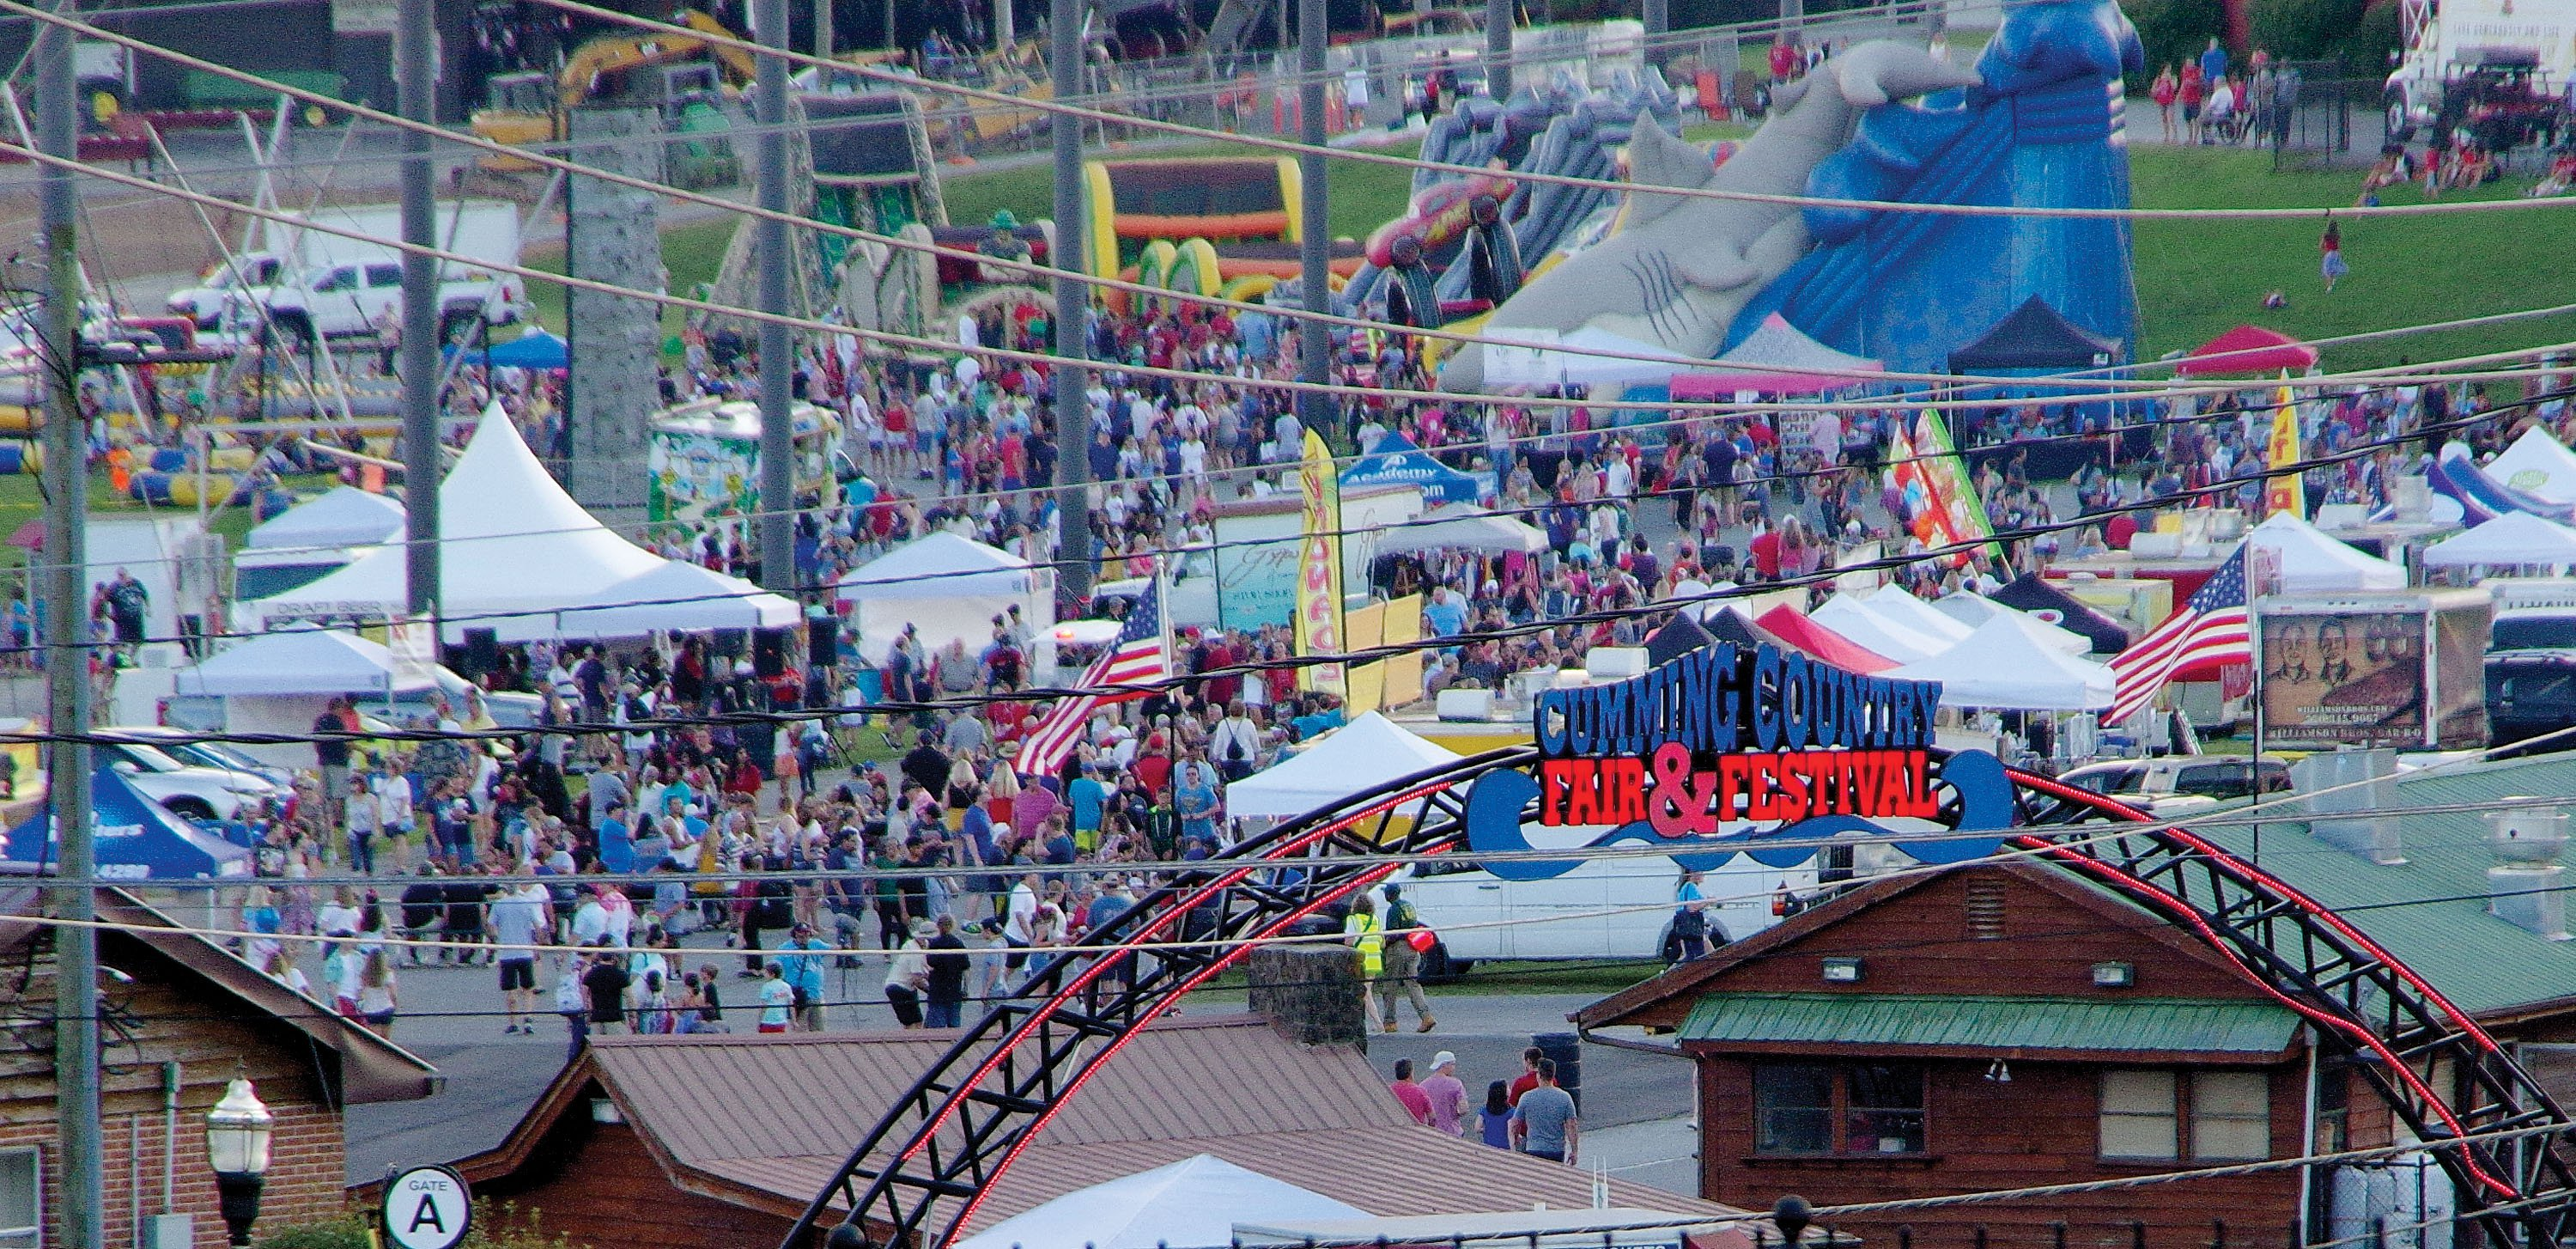 The Fairgrounds was busy all day